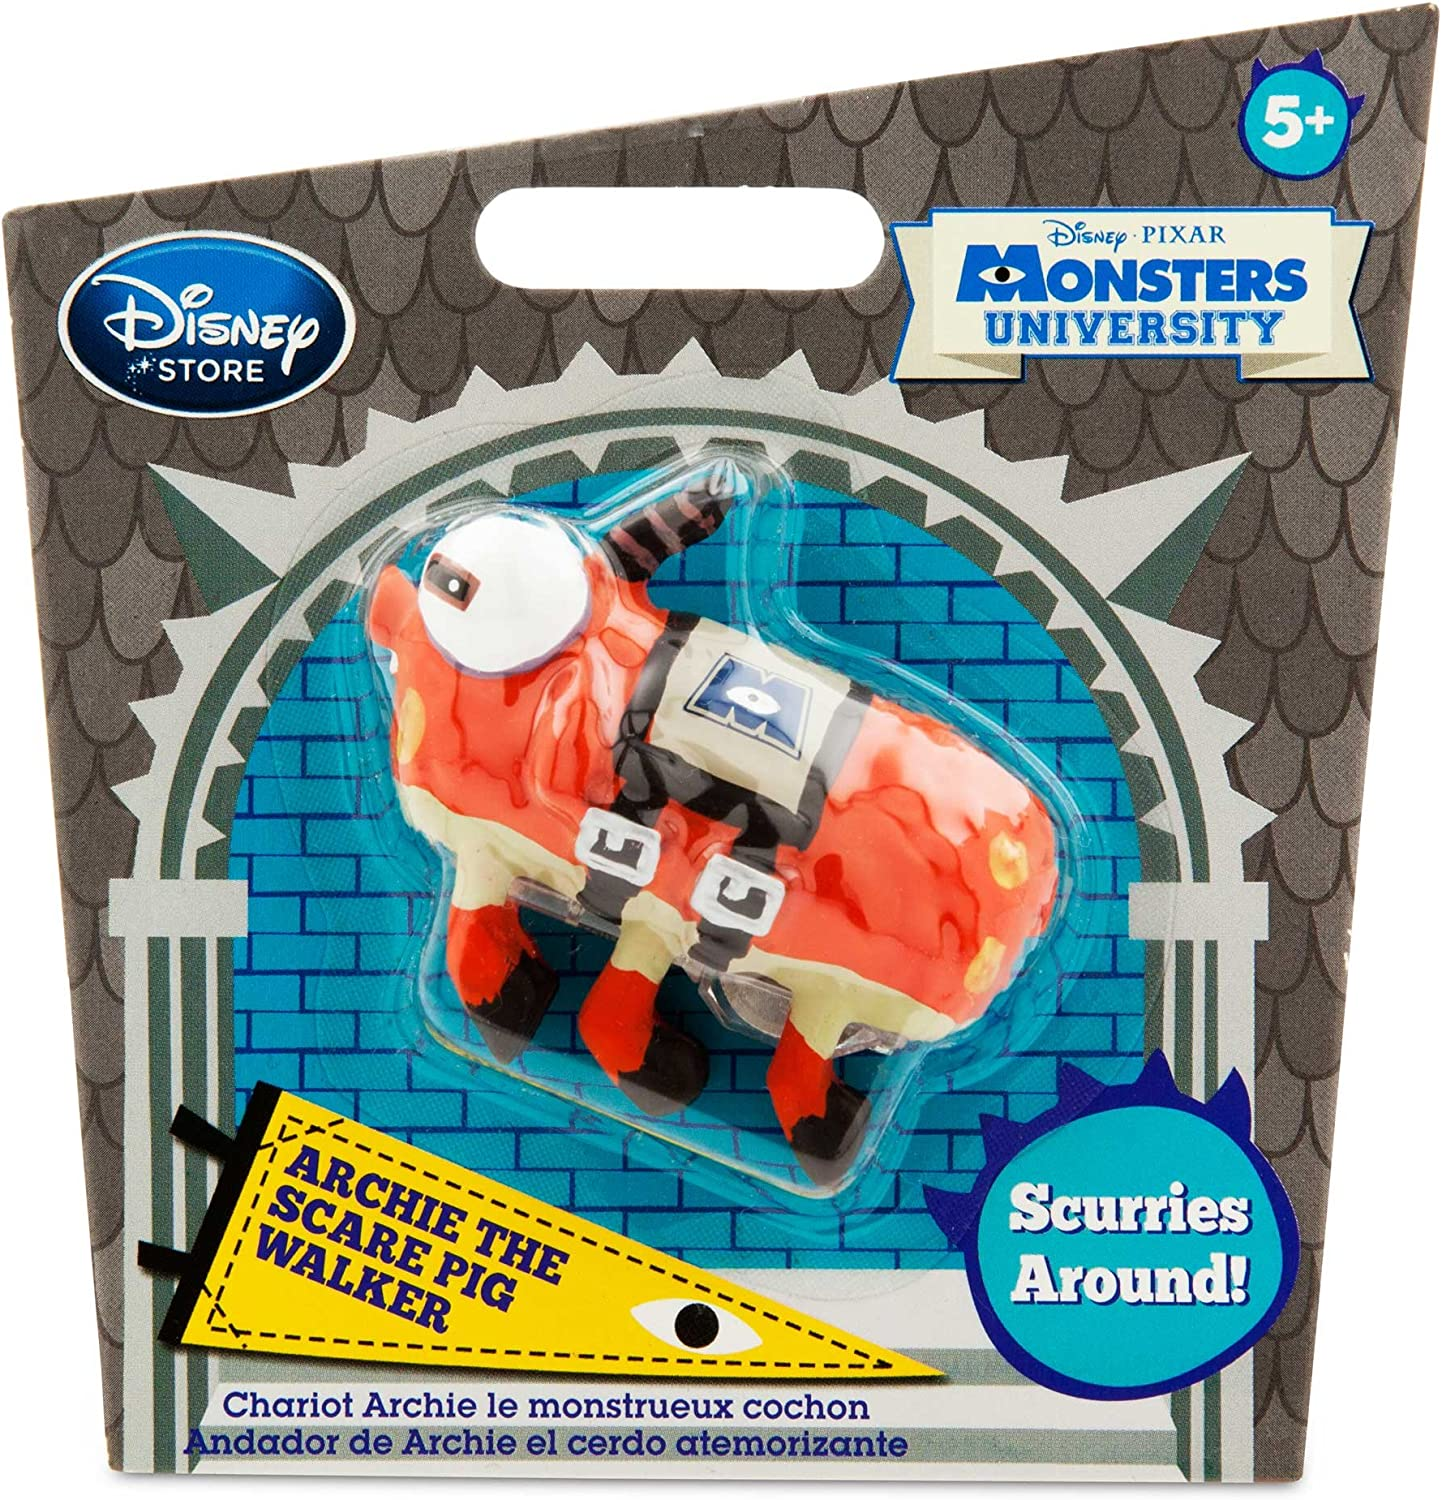 Monsters University Archie The Scare Pig Mini-Walker Toy